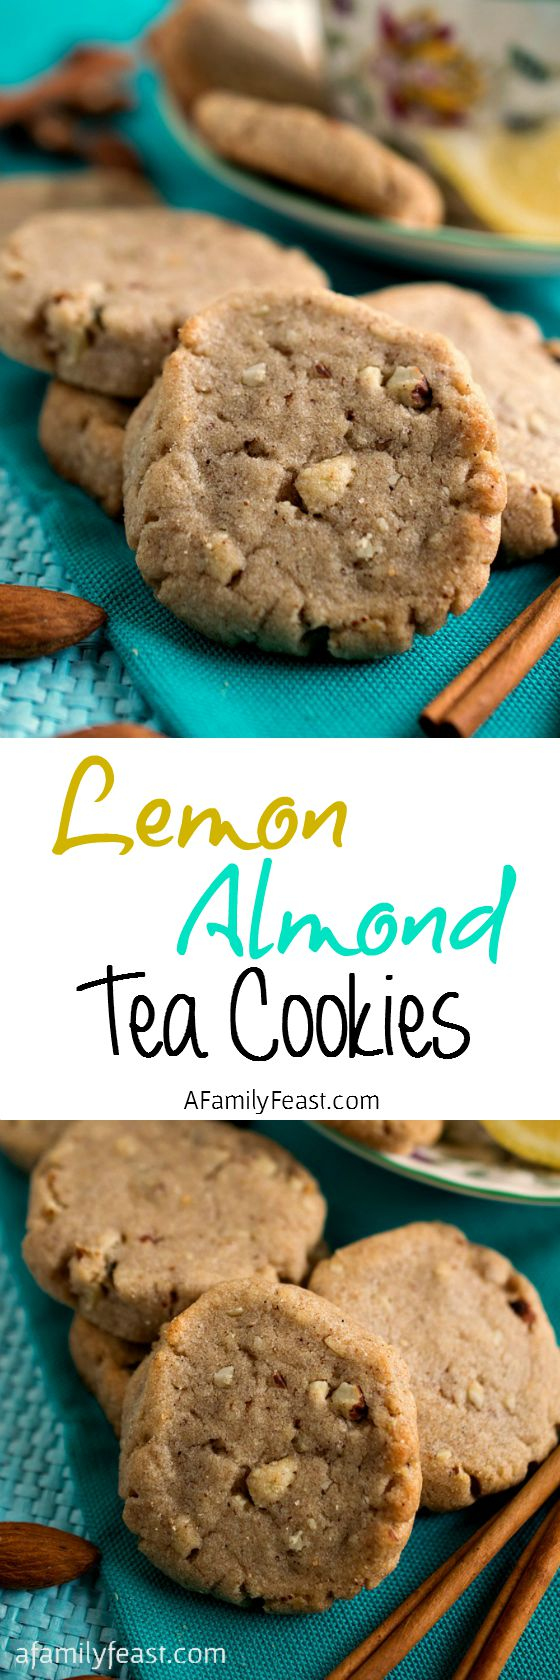 Lemon Almond Tea Cookies - A vintage cookie recipe from 1897. Perfect with tea or a glass of milk!